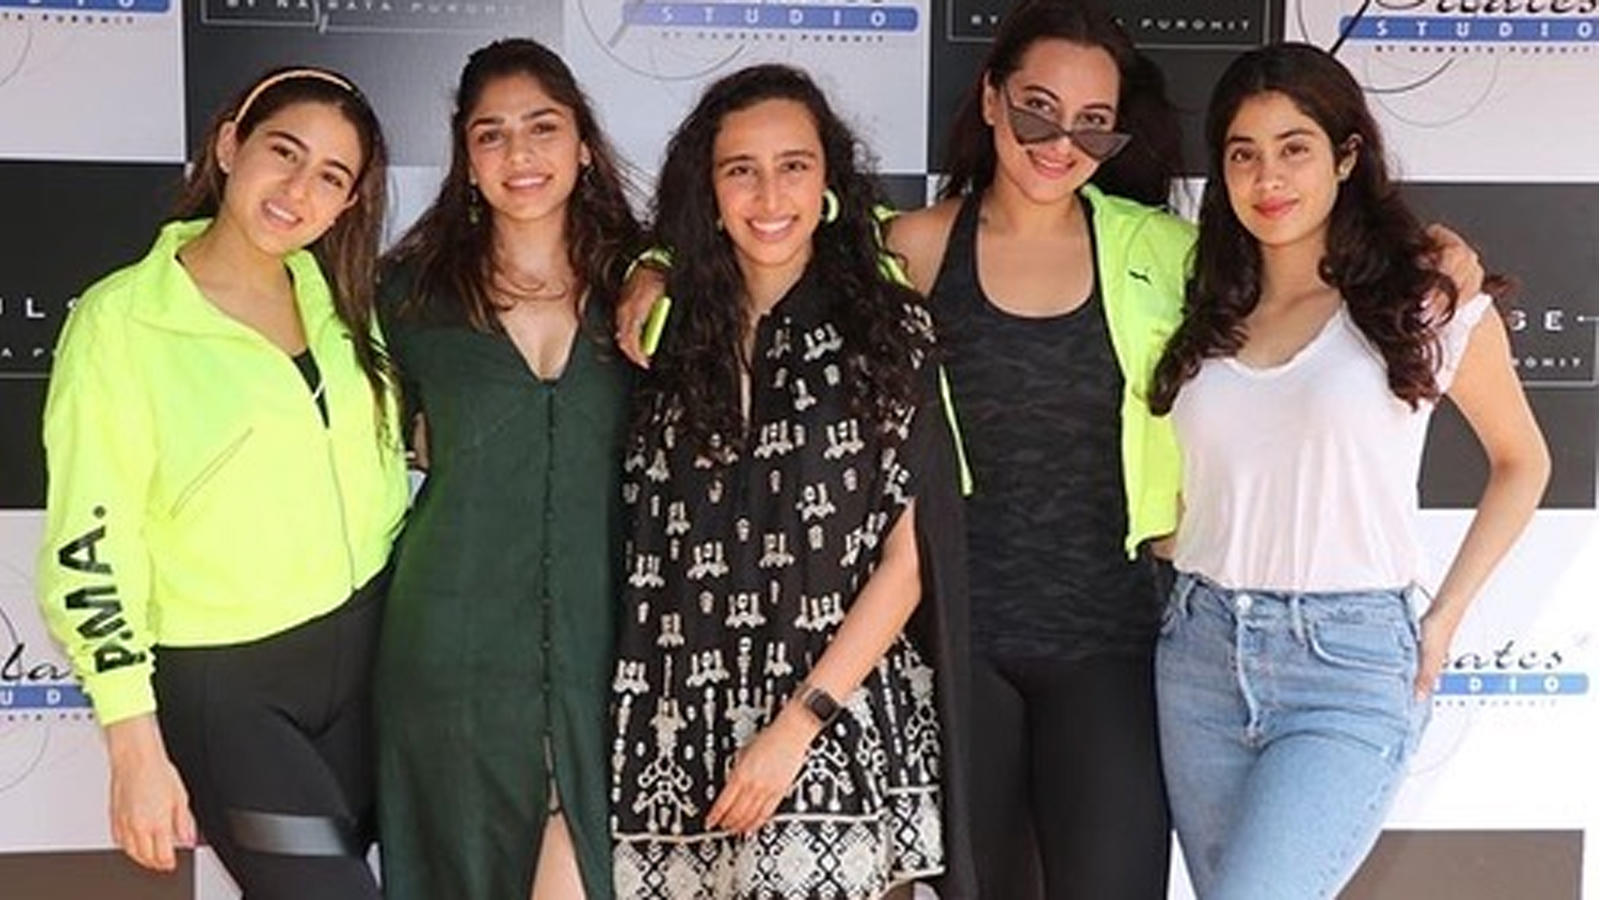 Sonakshi Sinha, Sara Ali Khan and Janhvi Kapoor at pilates instructor Namrata Purohit's birthday bash